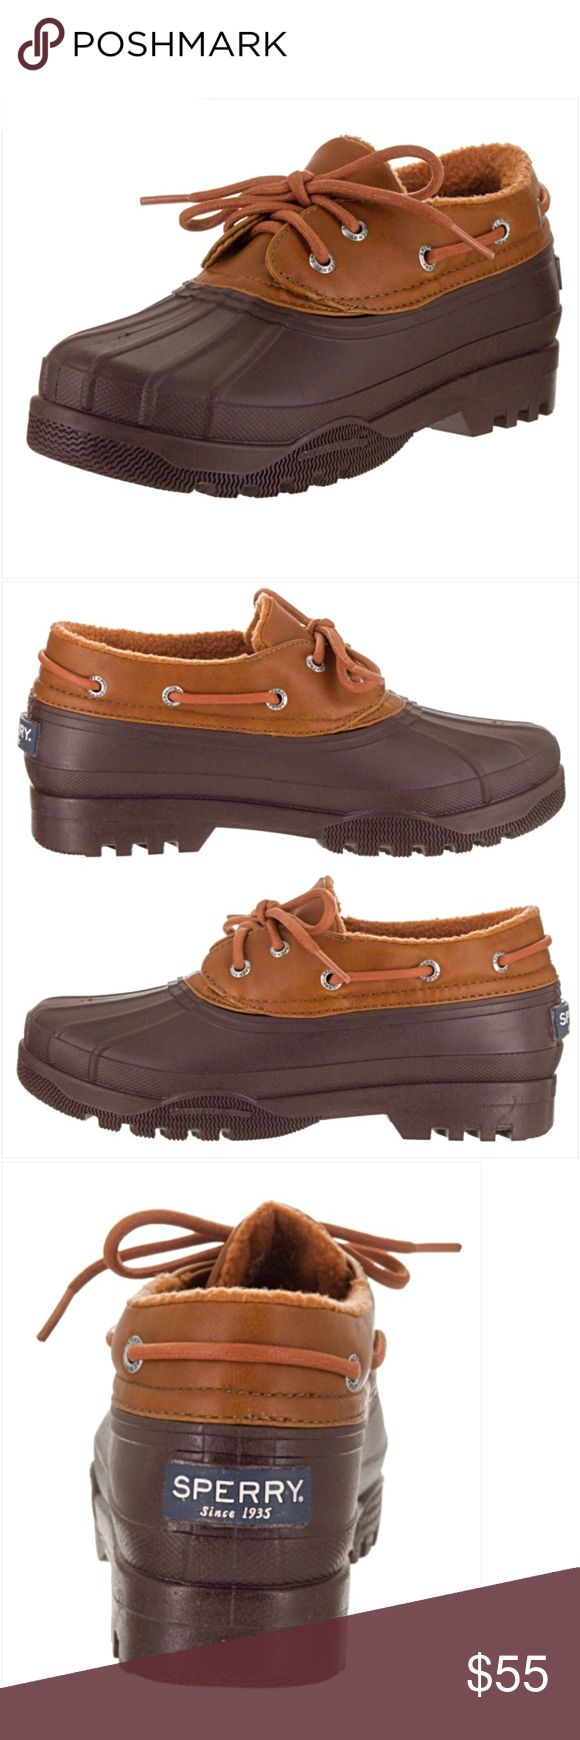 Sperry Top Sider Duck Waterproof Shoes Boots 6.5 7 Amazing Sperry Top Sider rubber duck boots shoes in brown cognac. Stay dry & cute in these waterproof leather & rubber shoes. Lace up closure for secure fit & thick rubber soles with great traction. Perfect in snow or rain!  True to size NEW Without Tags/Box 6.5 7 Sperry Top-Sider Shoes Winter & Rain Boots